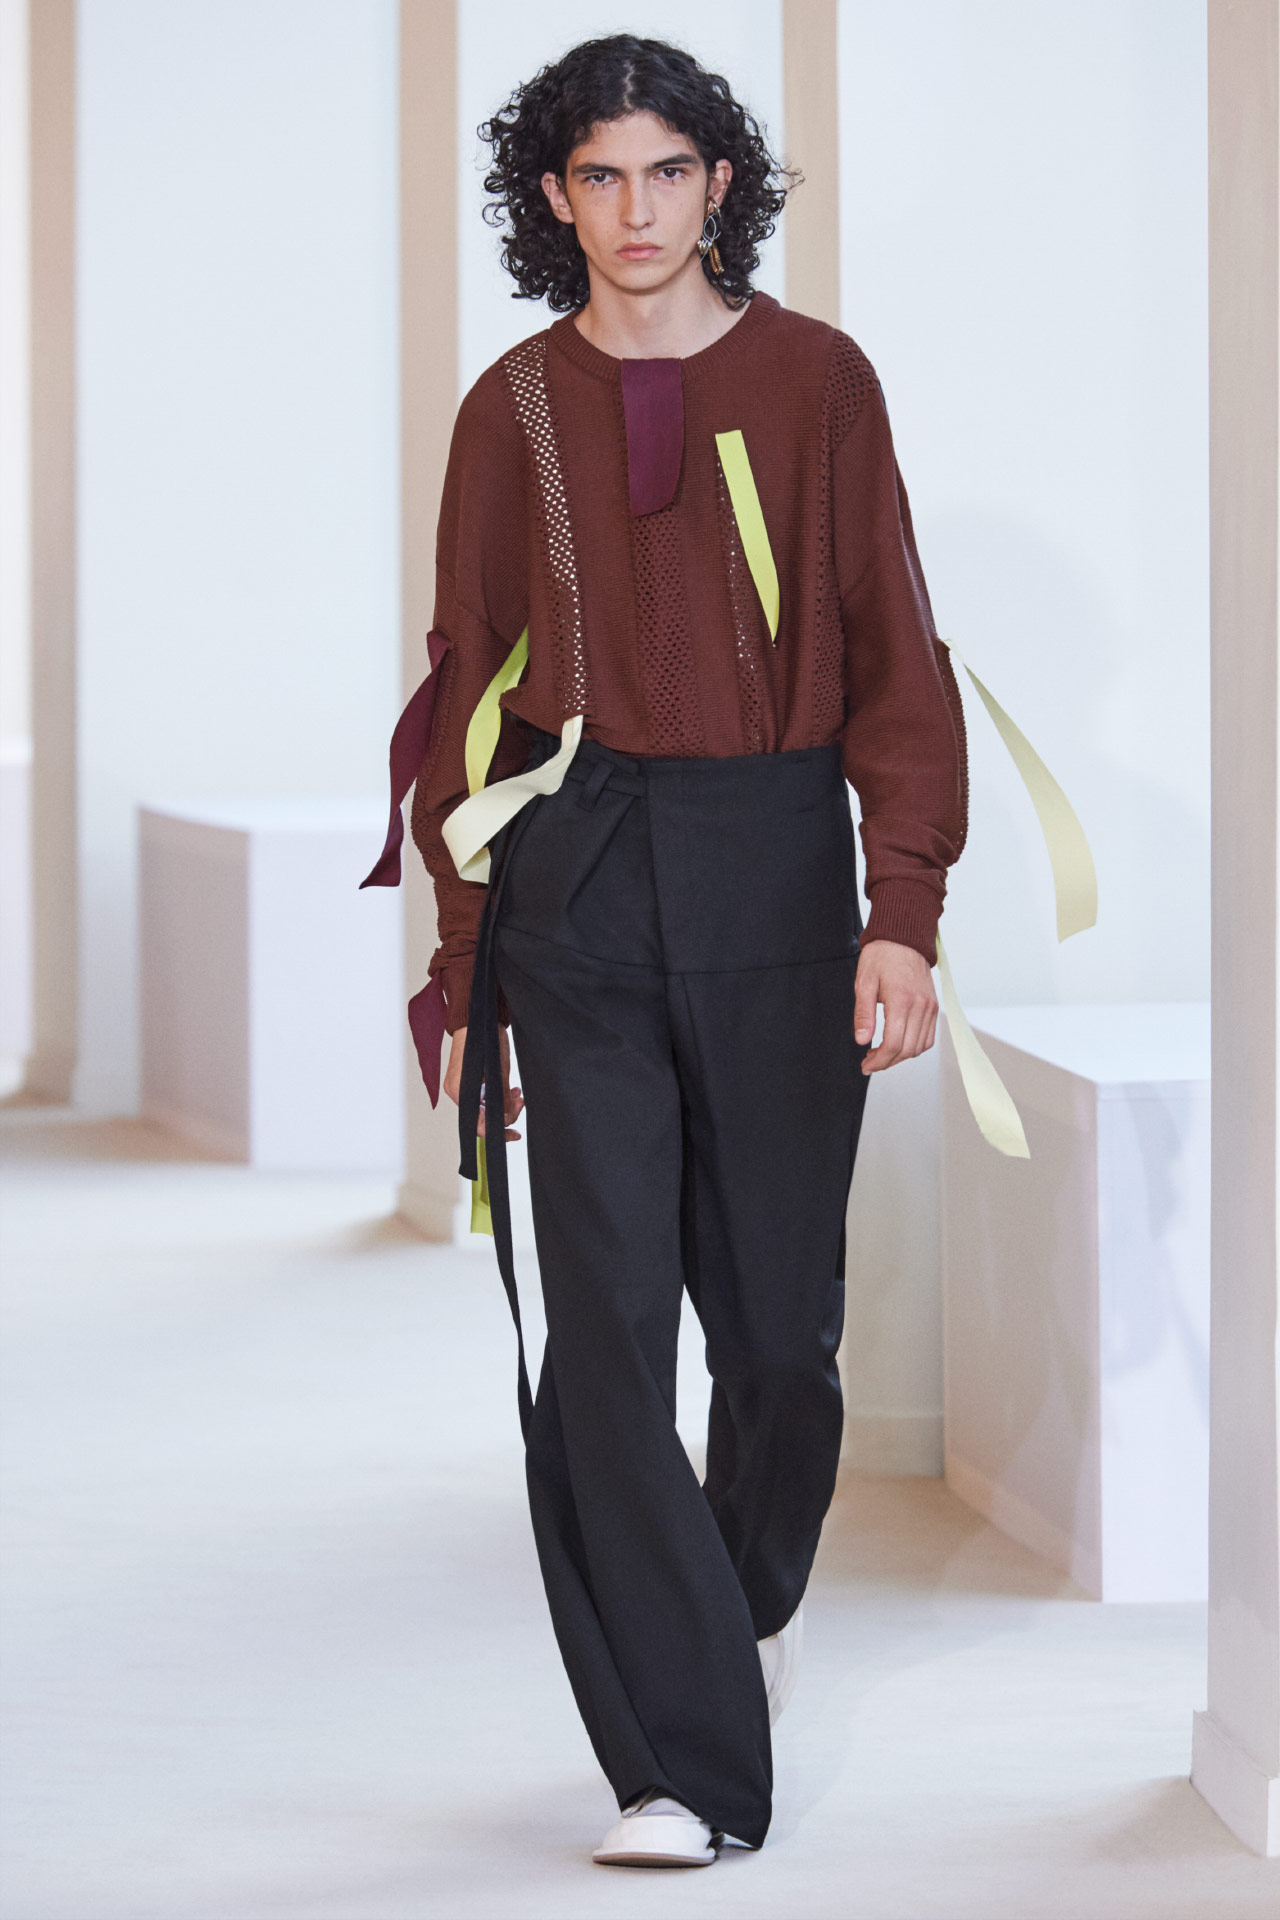 Look Spring/Summer, image 33